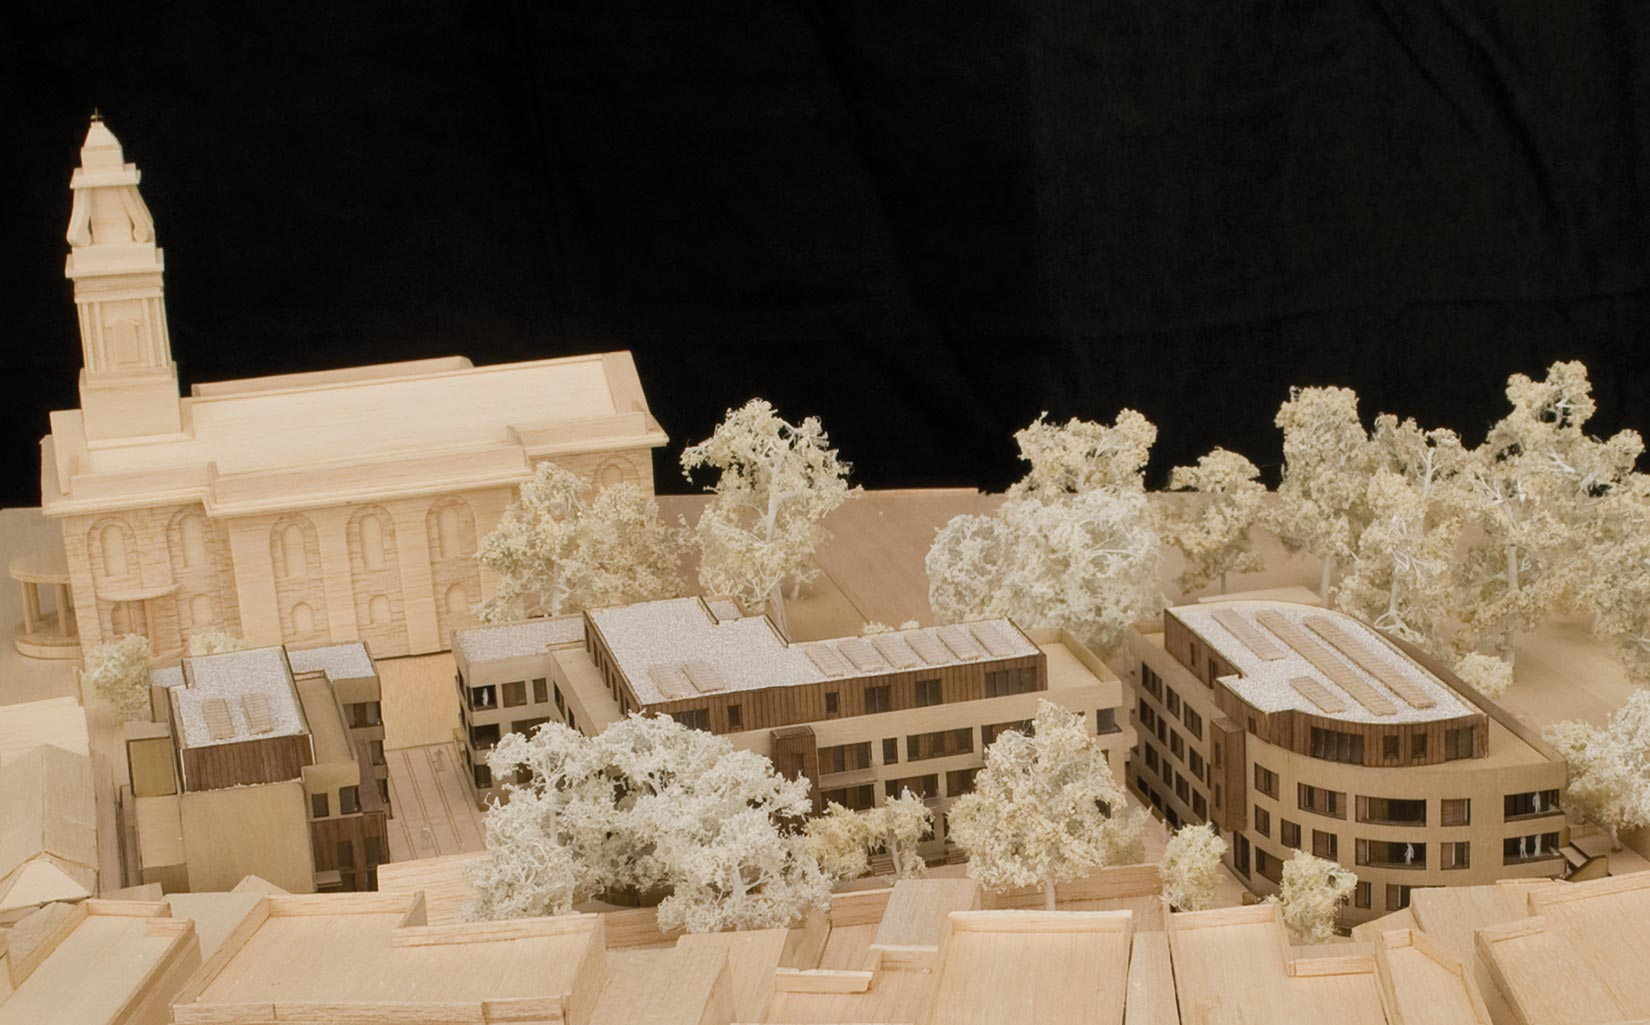 St John's Gardens, Hackney, London, Proposed site model used as a working design tool and displayed at the public consultation event